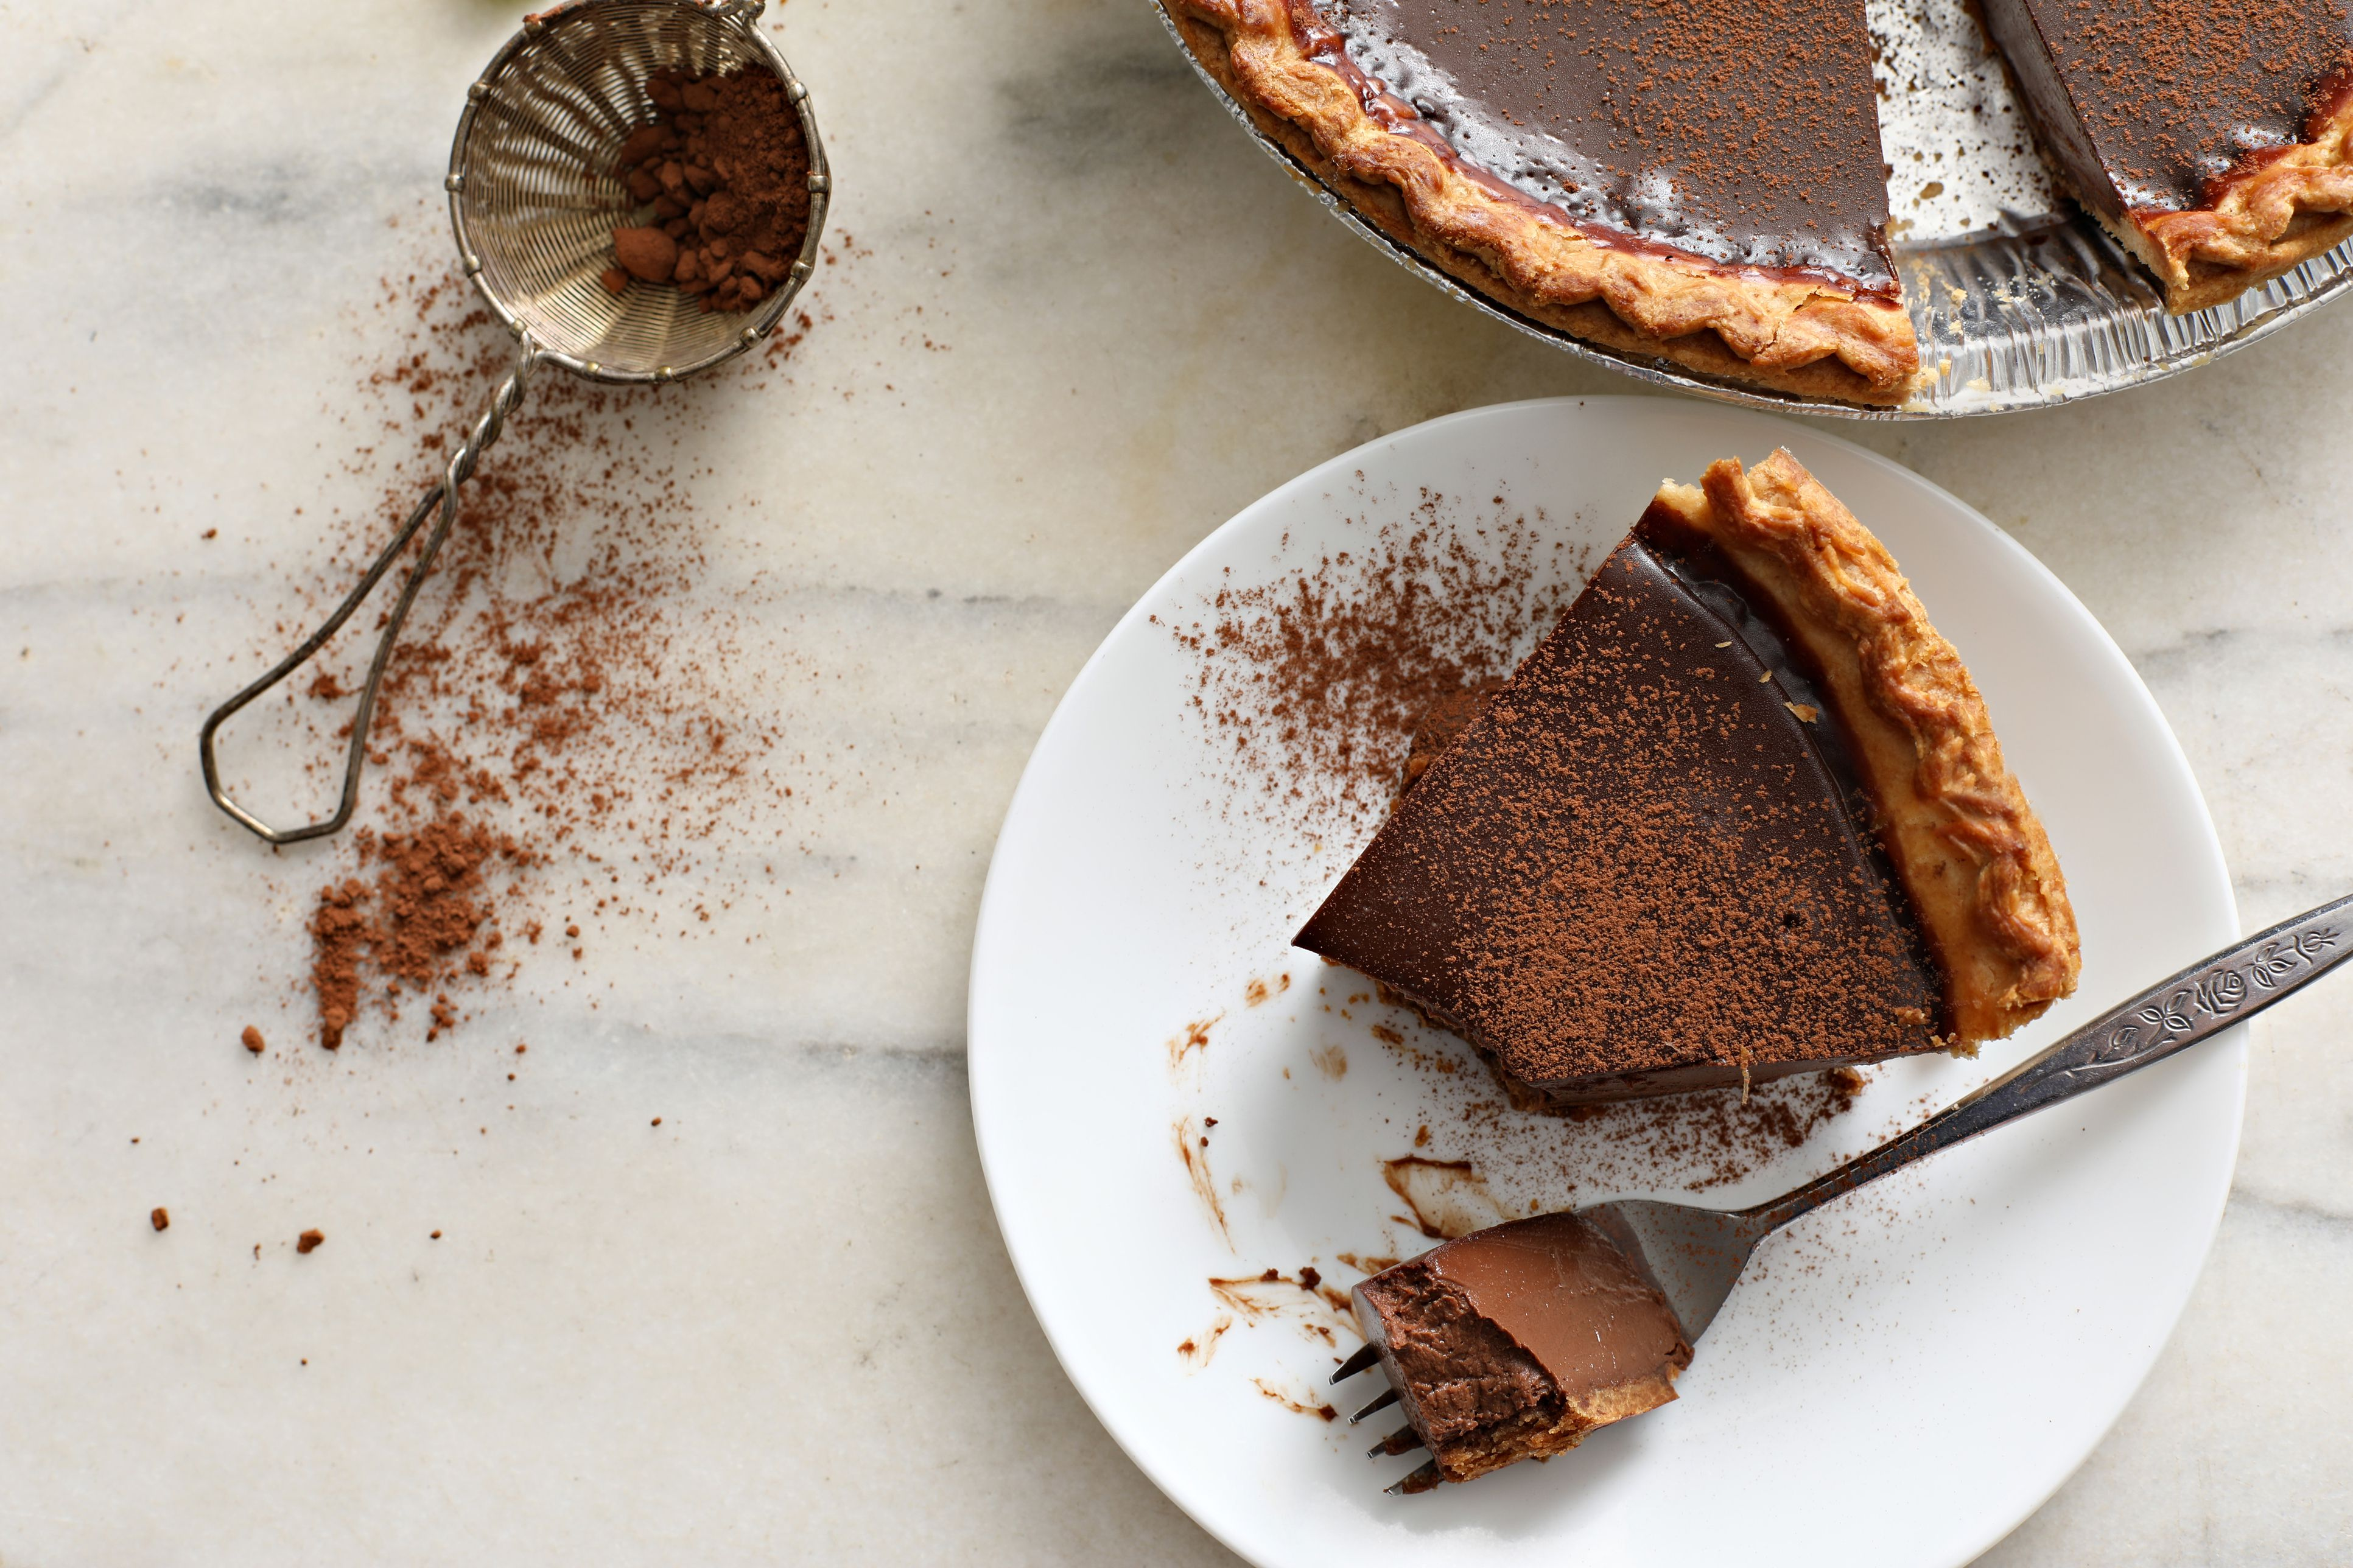 Derby pie sprinkled with cocoa powder